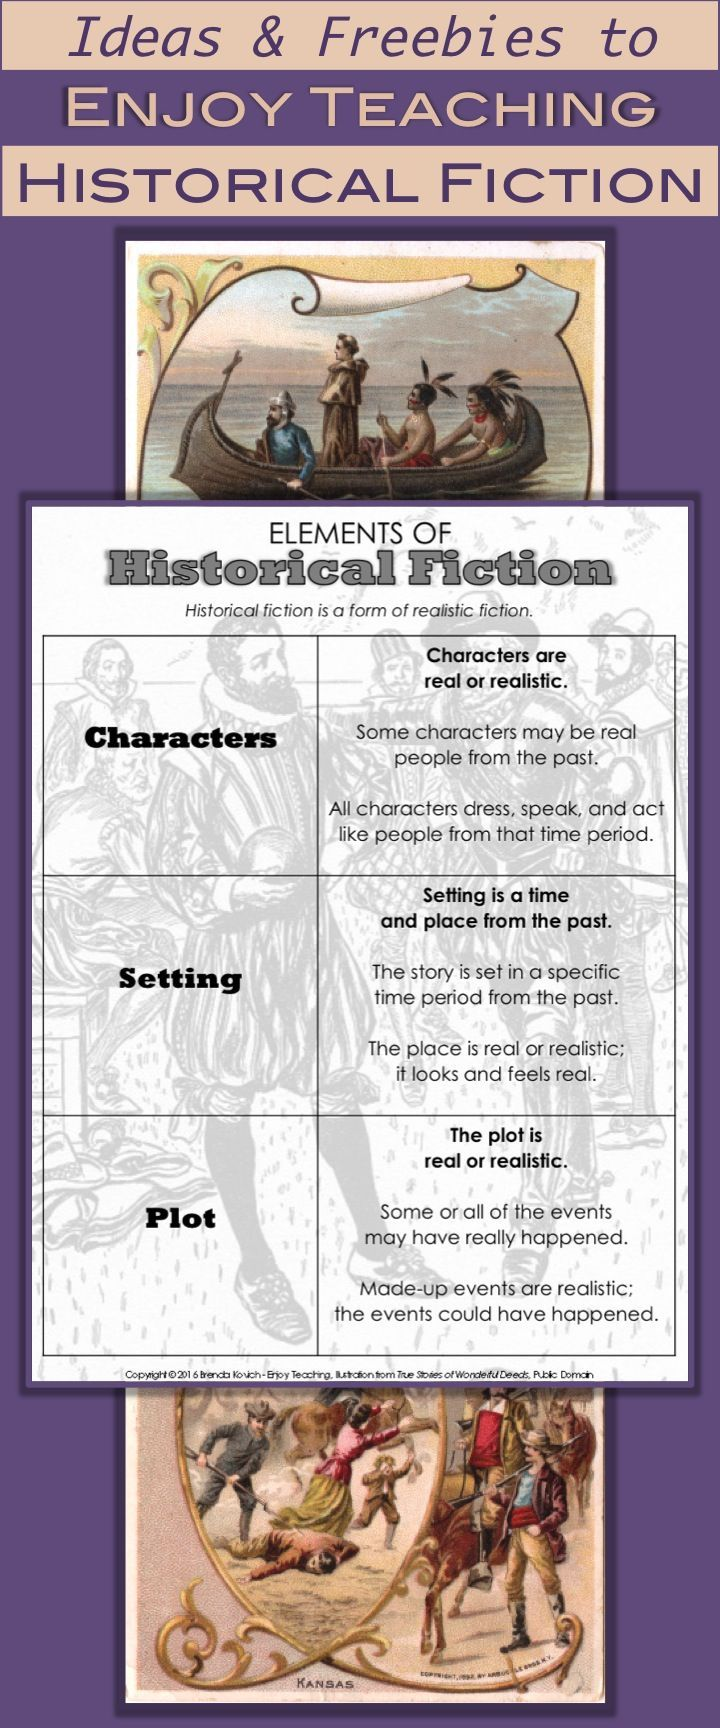 Bring history to life with historical fiction. Grab this free infographic (and some great ideas for teaching historical fiction) at http://Enjoy-Teaching.com. Visit weekly for activities, ideas, and links for third, fourth, or fifth grade students.